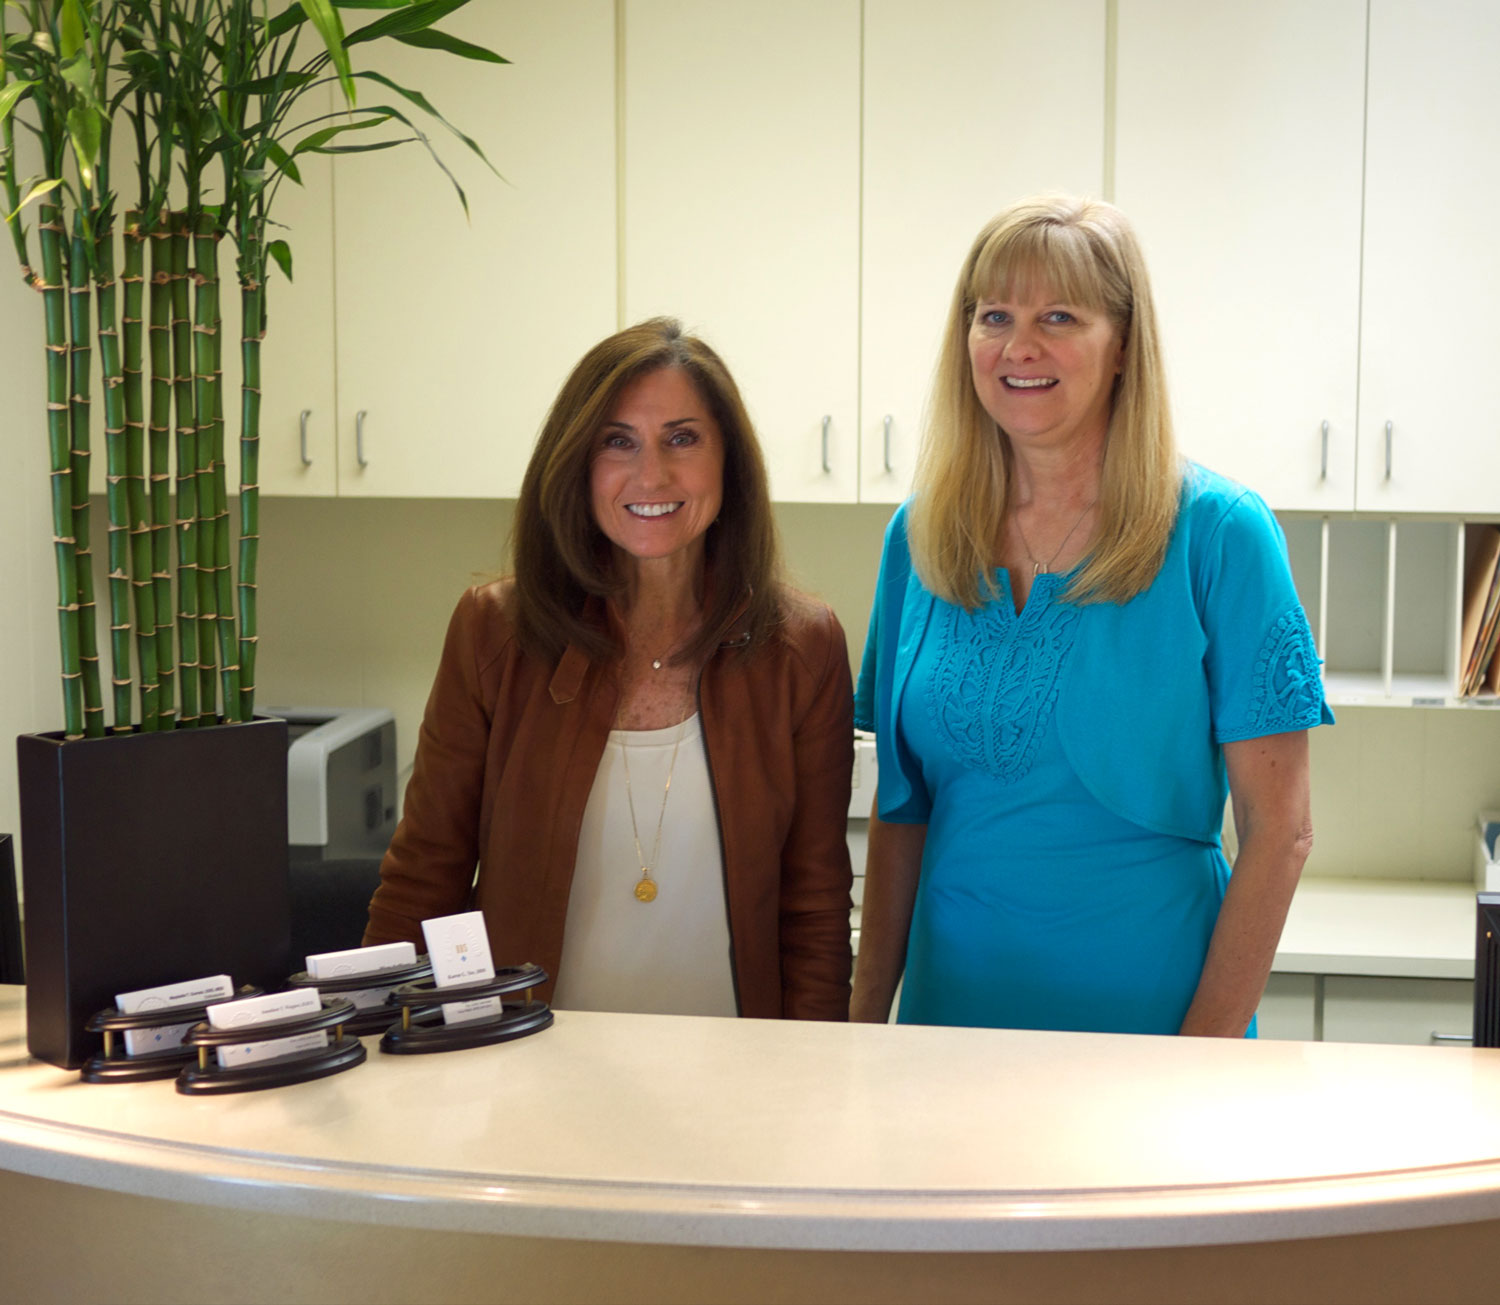 Office manager Mary and Registered Dental Assistant Kathleen